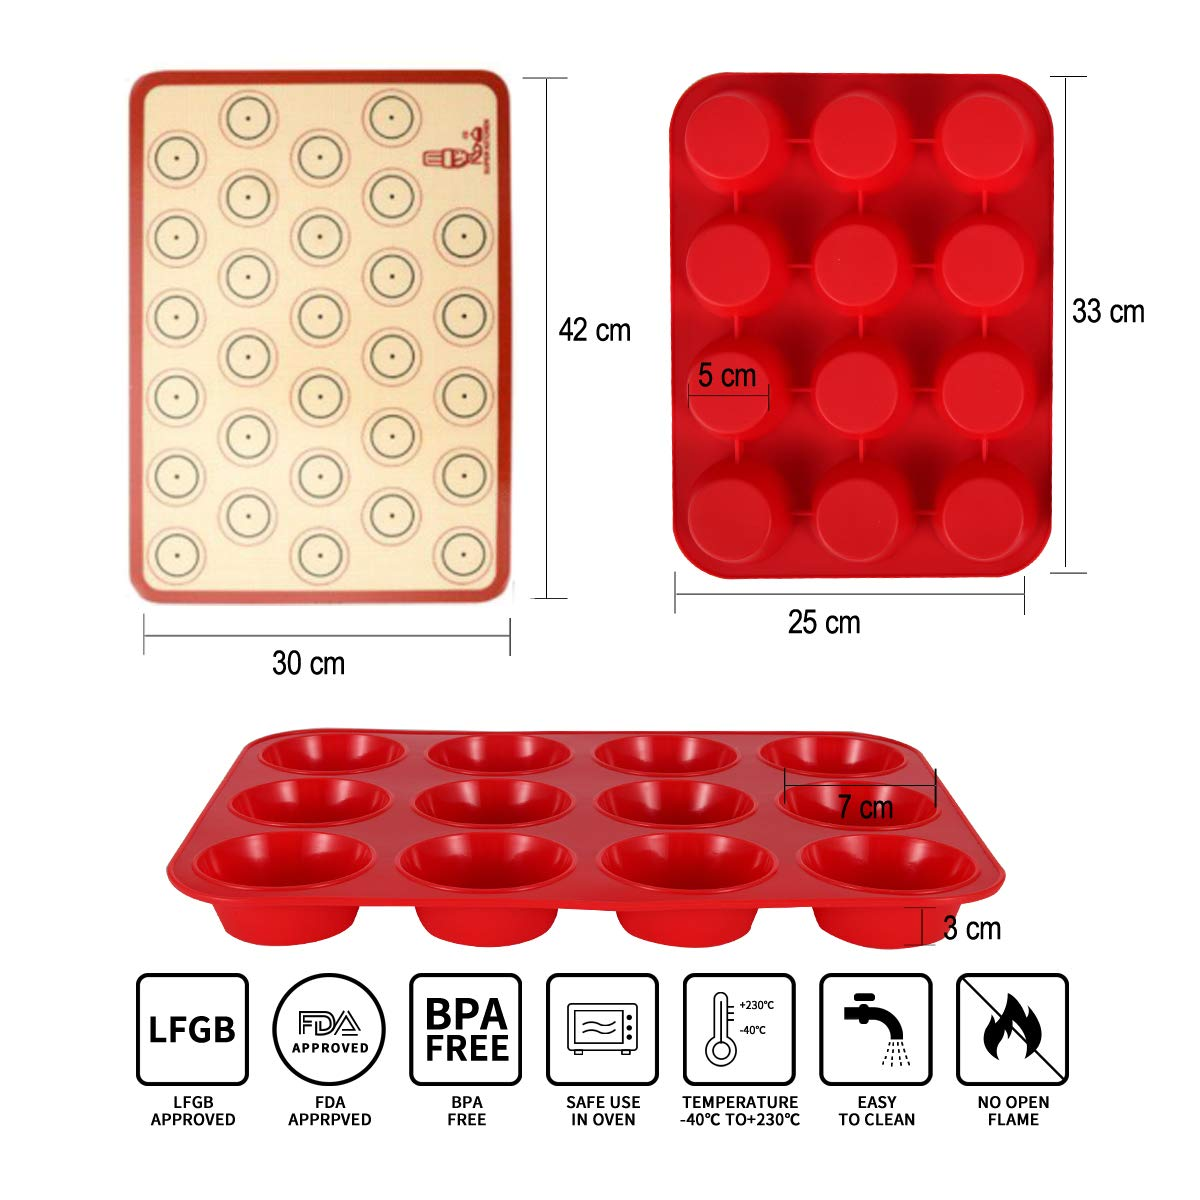 Non-Stick Muffin Cupcake Tin Red Baking Mould for Muffins or Cupcakes Bakeware 33 x 25 x 3 cm Large Muffin Tray 12 Cup Silicone Muffin Pan